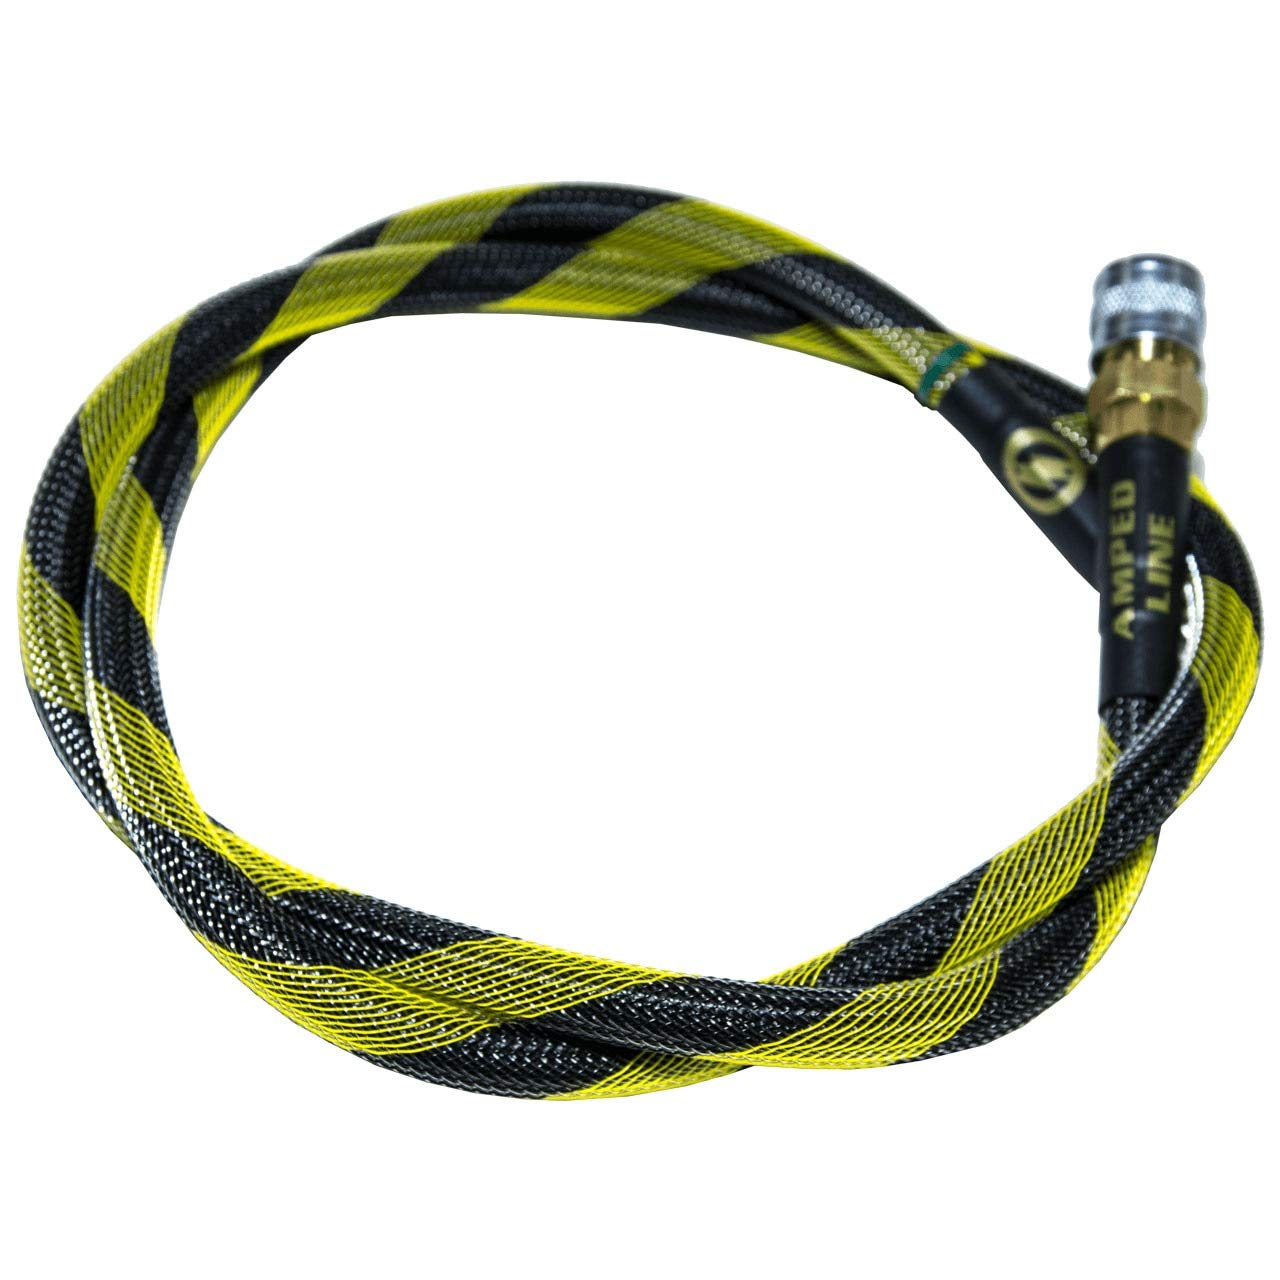 AMPED Airsoft Amped Line | Standard Weave for PolarStar, Wolverine, and Redline HPA Units 42 Inch Black & Yellow by AMPED Airsoft